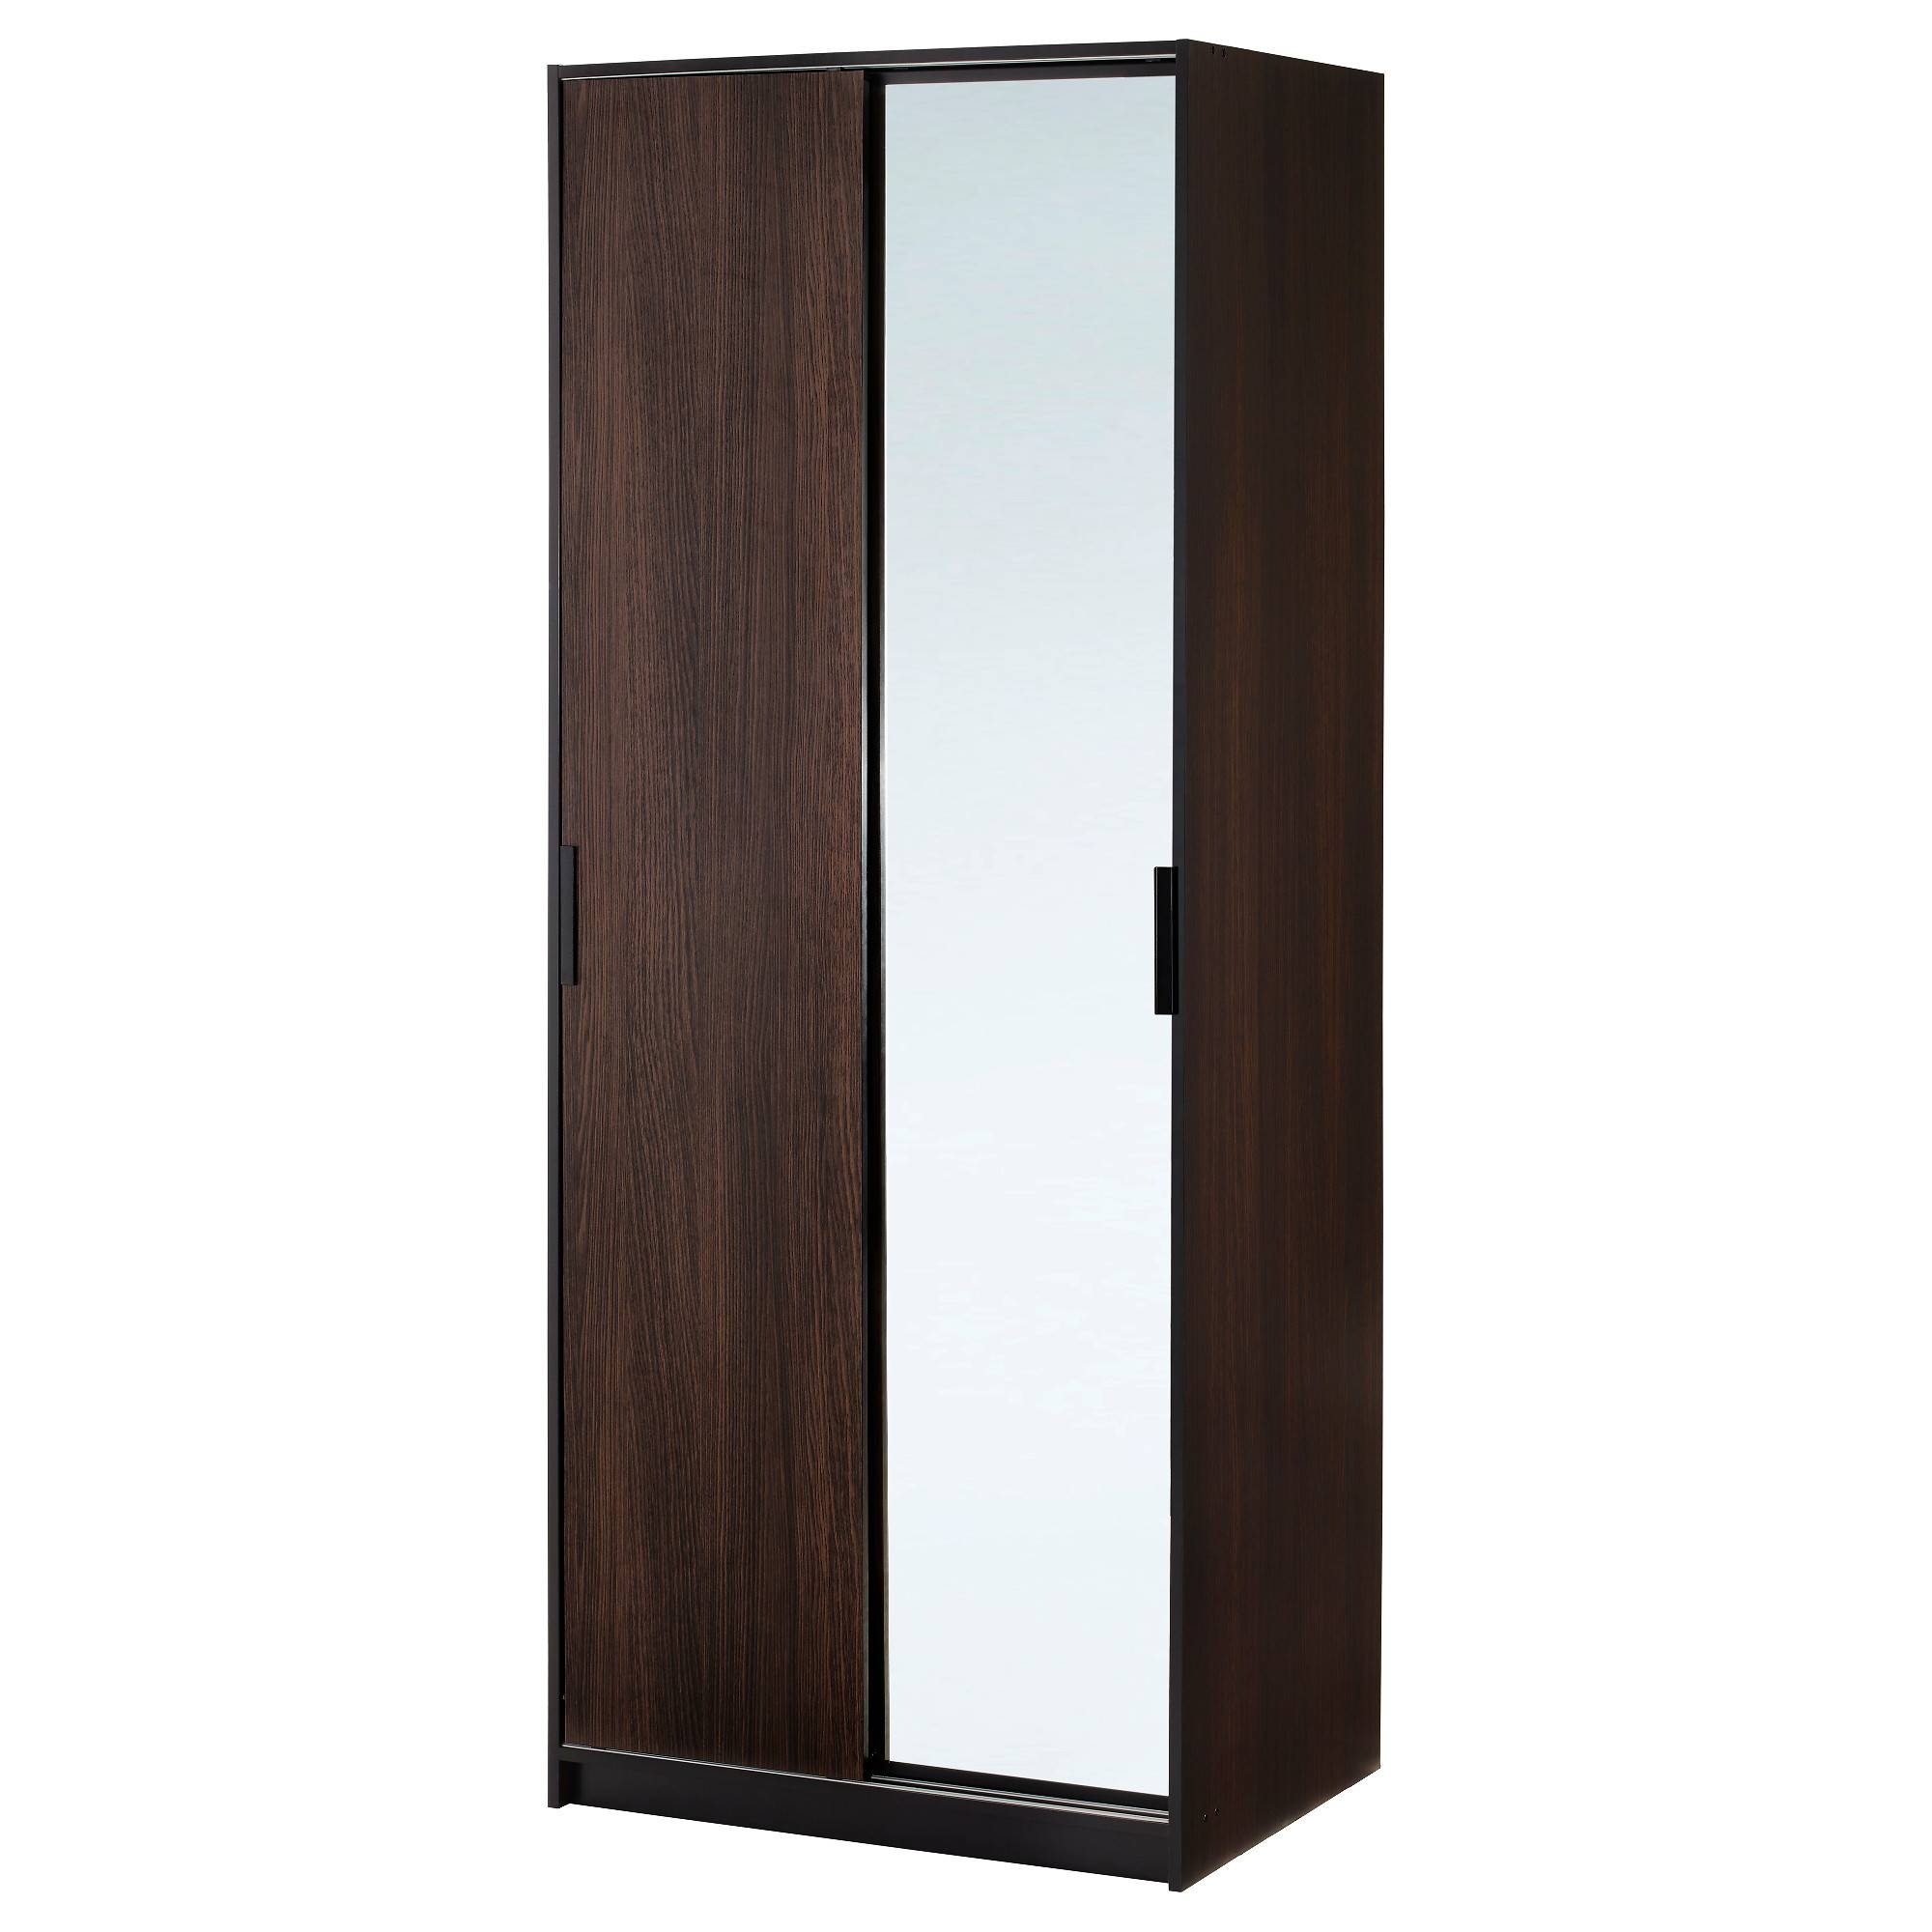 Wardrobes, Armoires & Closets – Ikea With Regard To Solid Dark Wood Wardrobes (View 30 of 30)